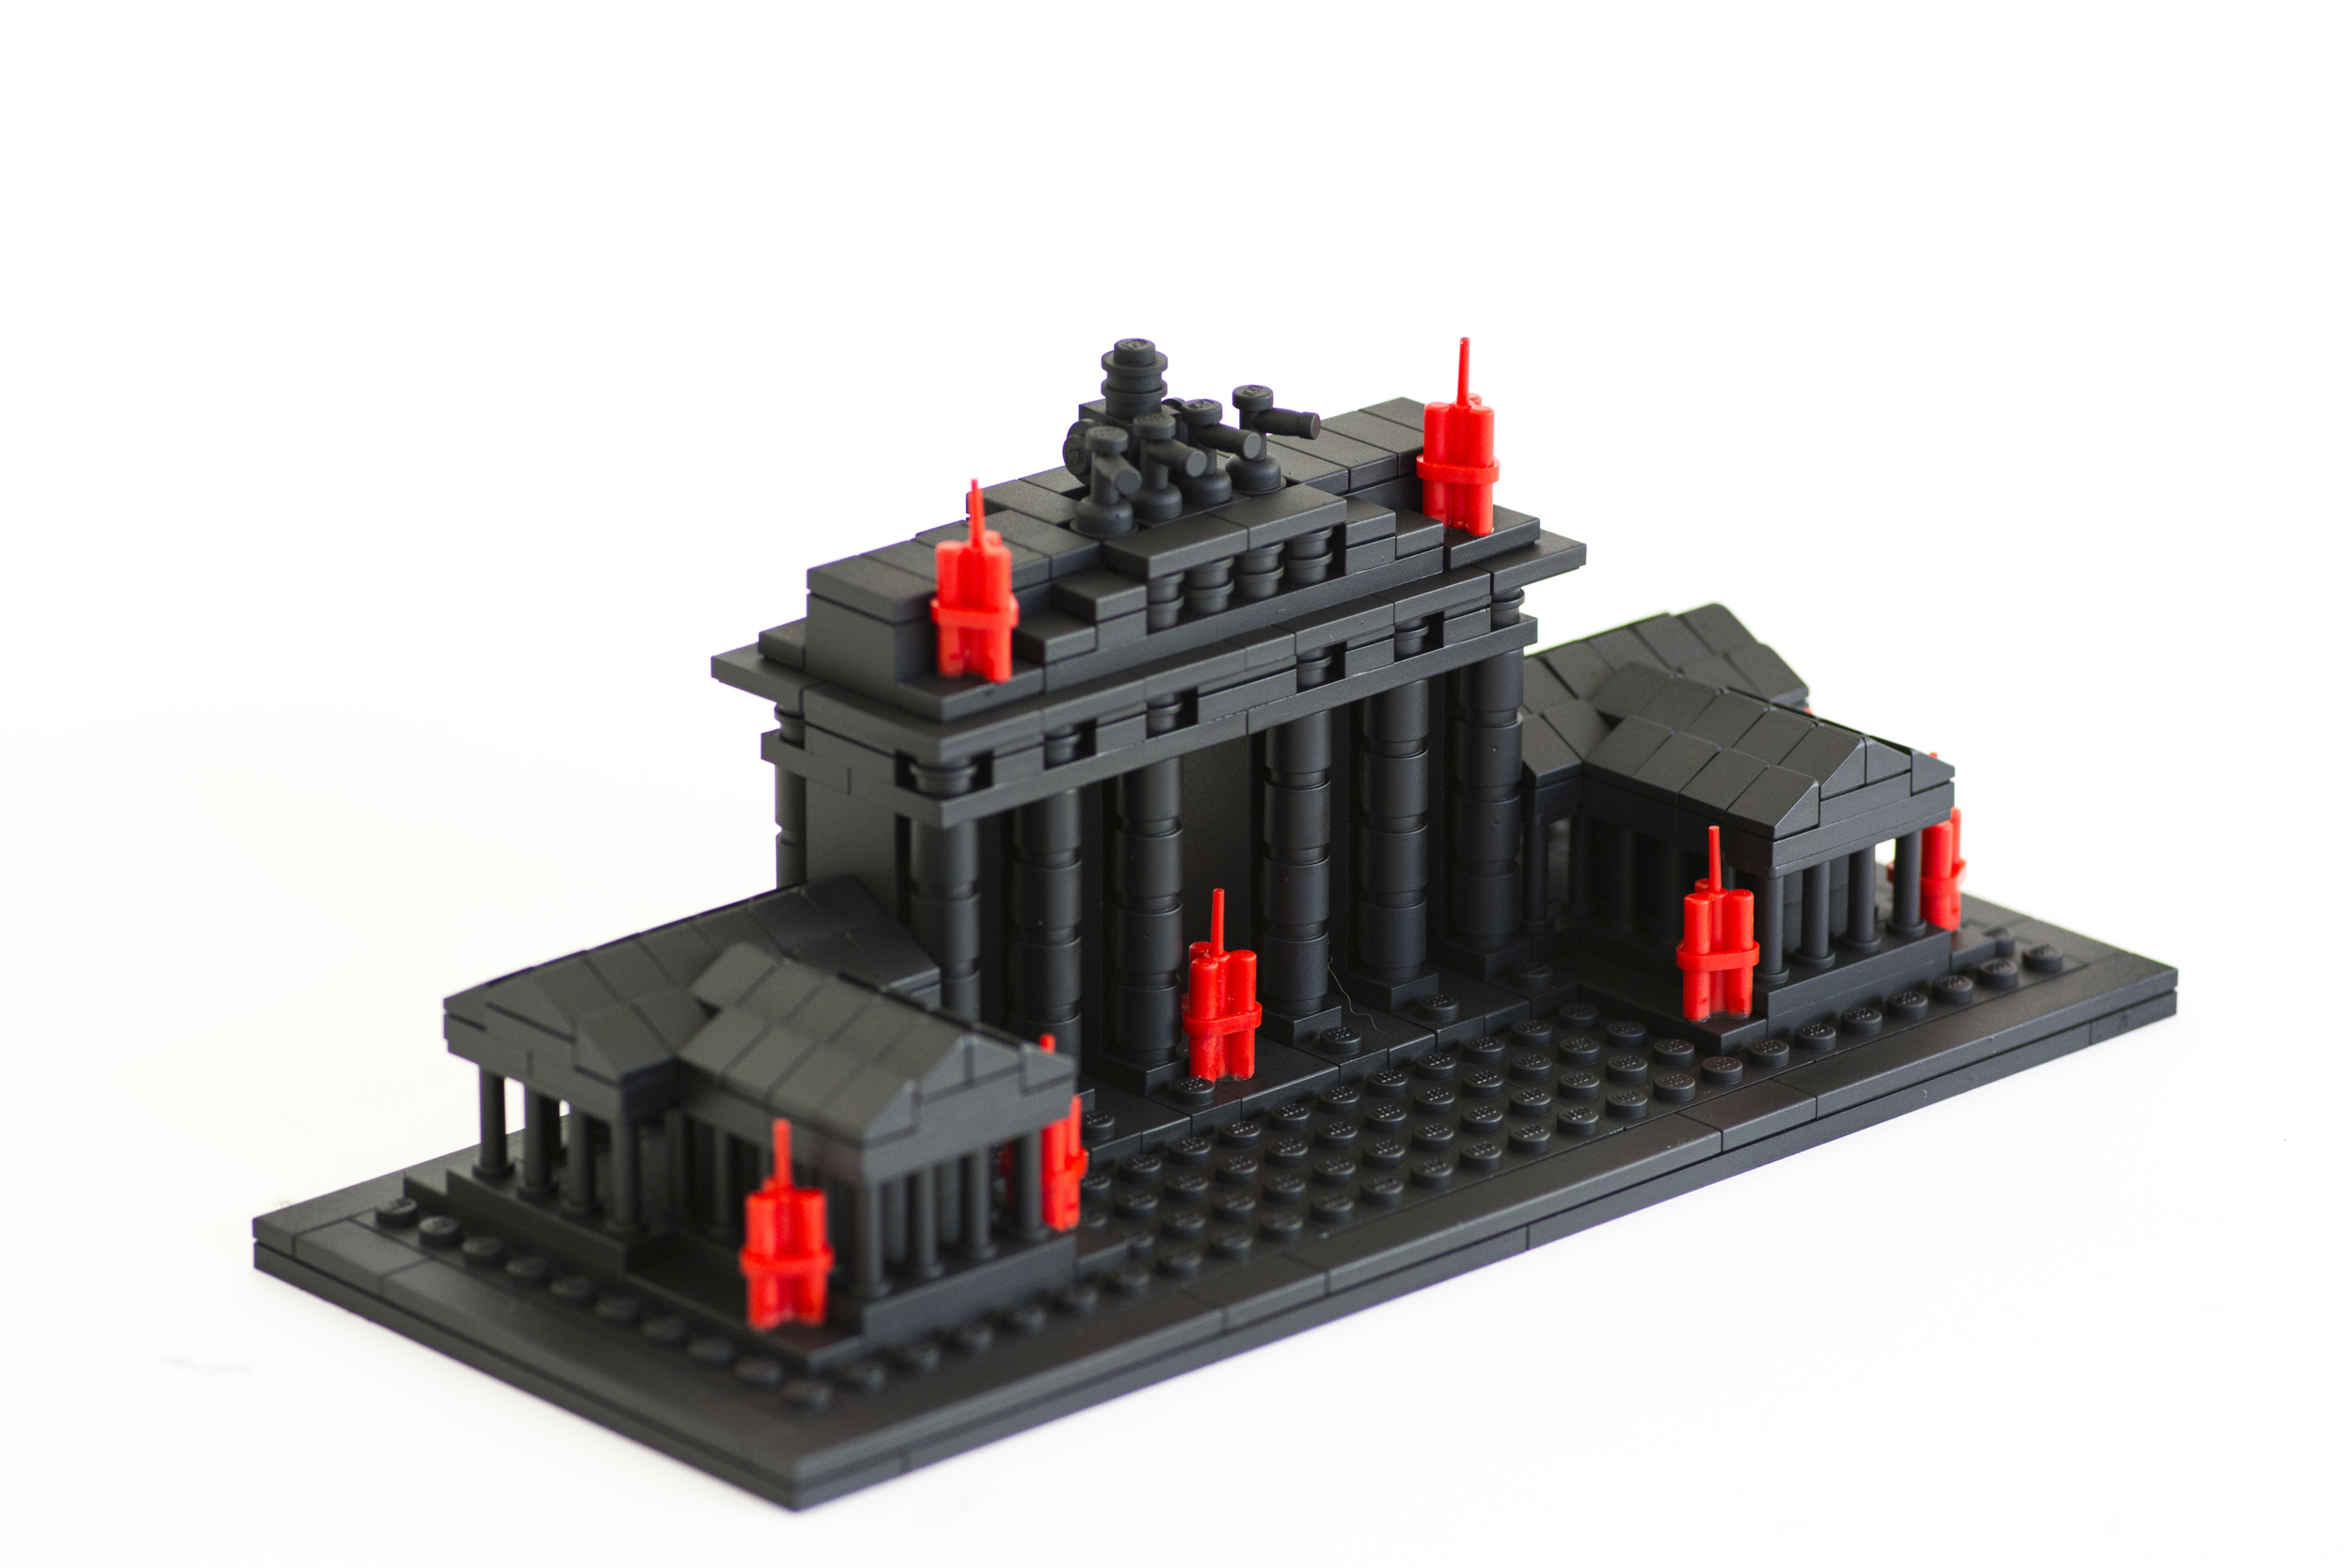 """Anti-Monuments for Counter Histories (09/12/1987) , painted lego pieces and plastic dynamite, 3.6"""" (9.2cm) tall, 8.8"""" (22.4cm) wide and 3.7"""" (9.6cm) deep,2015"""